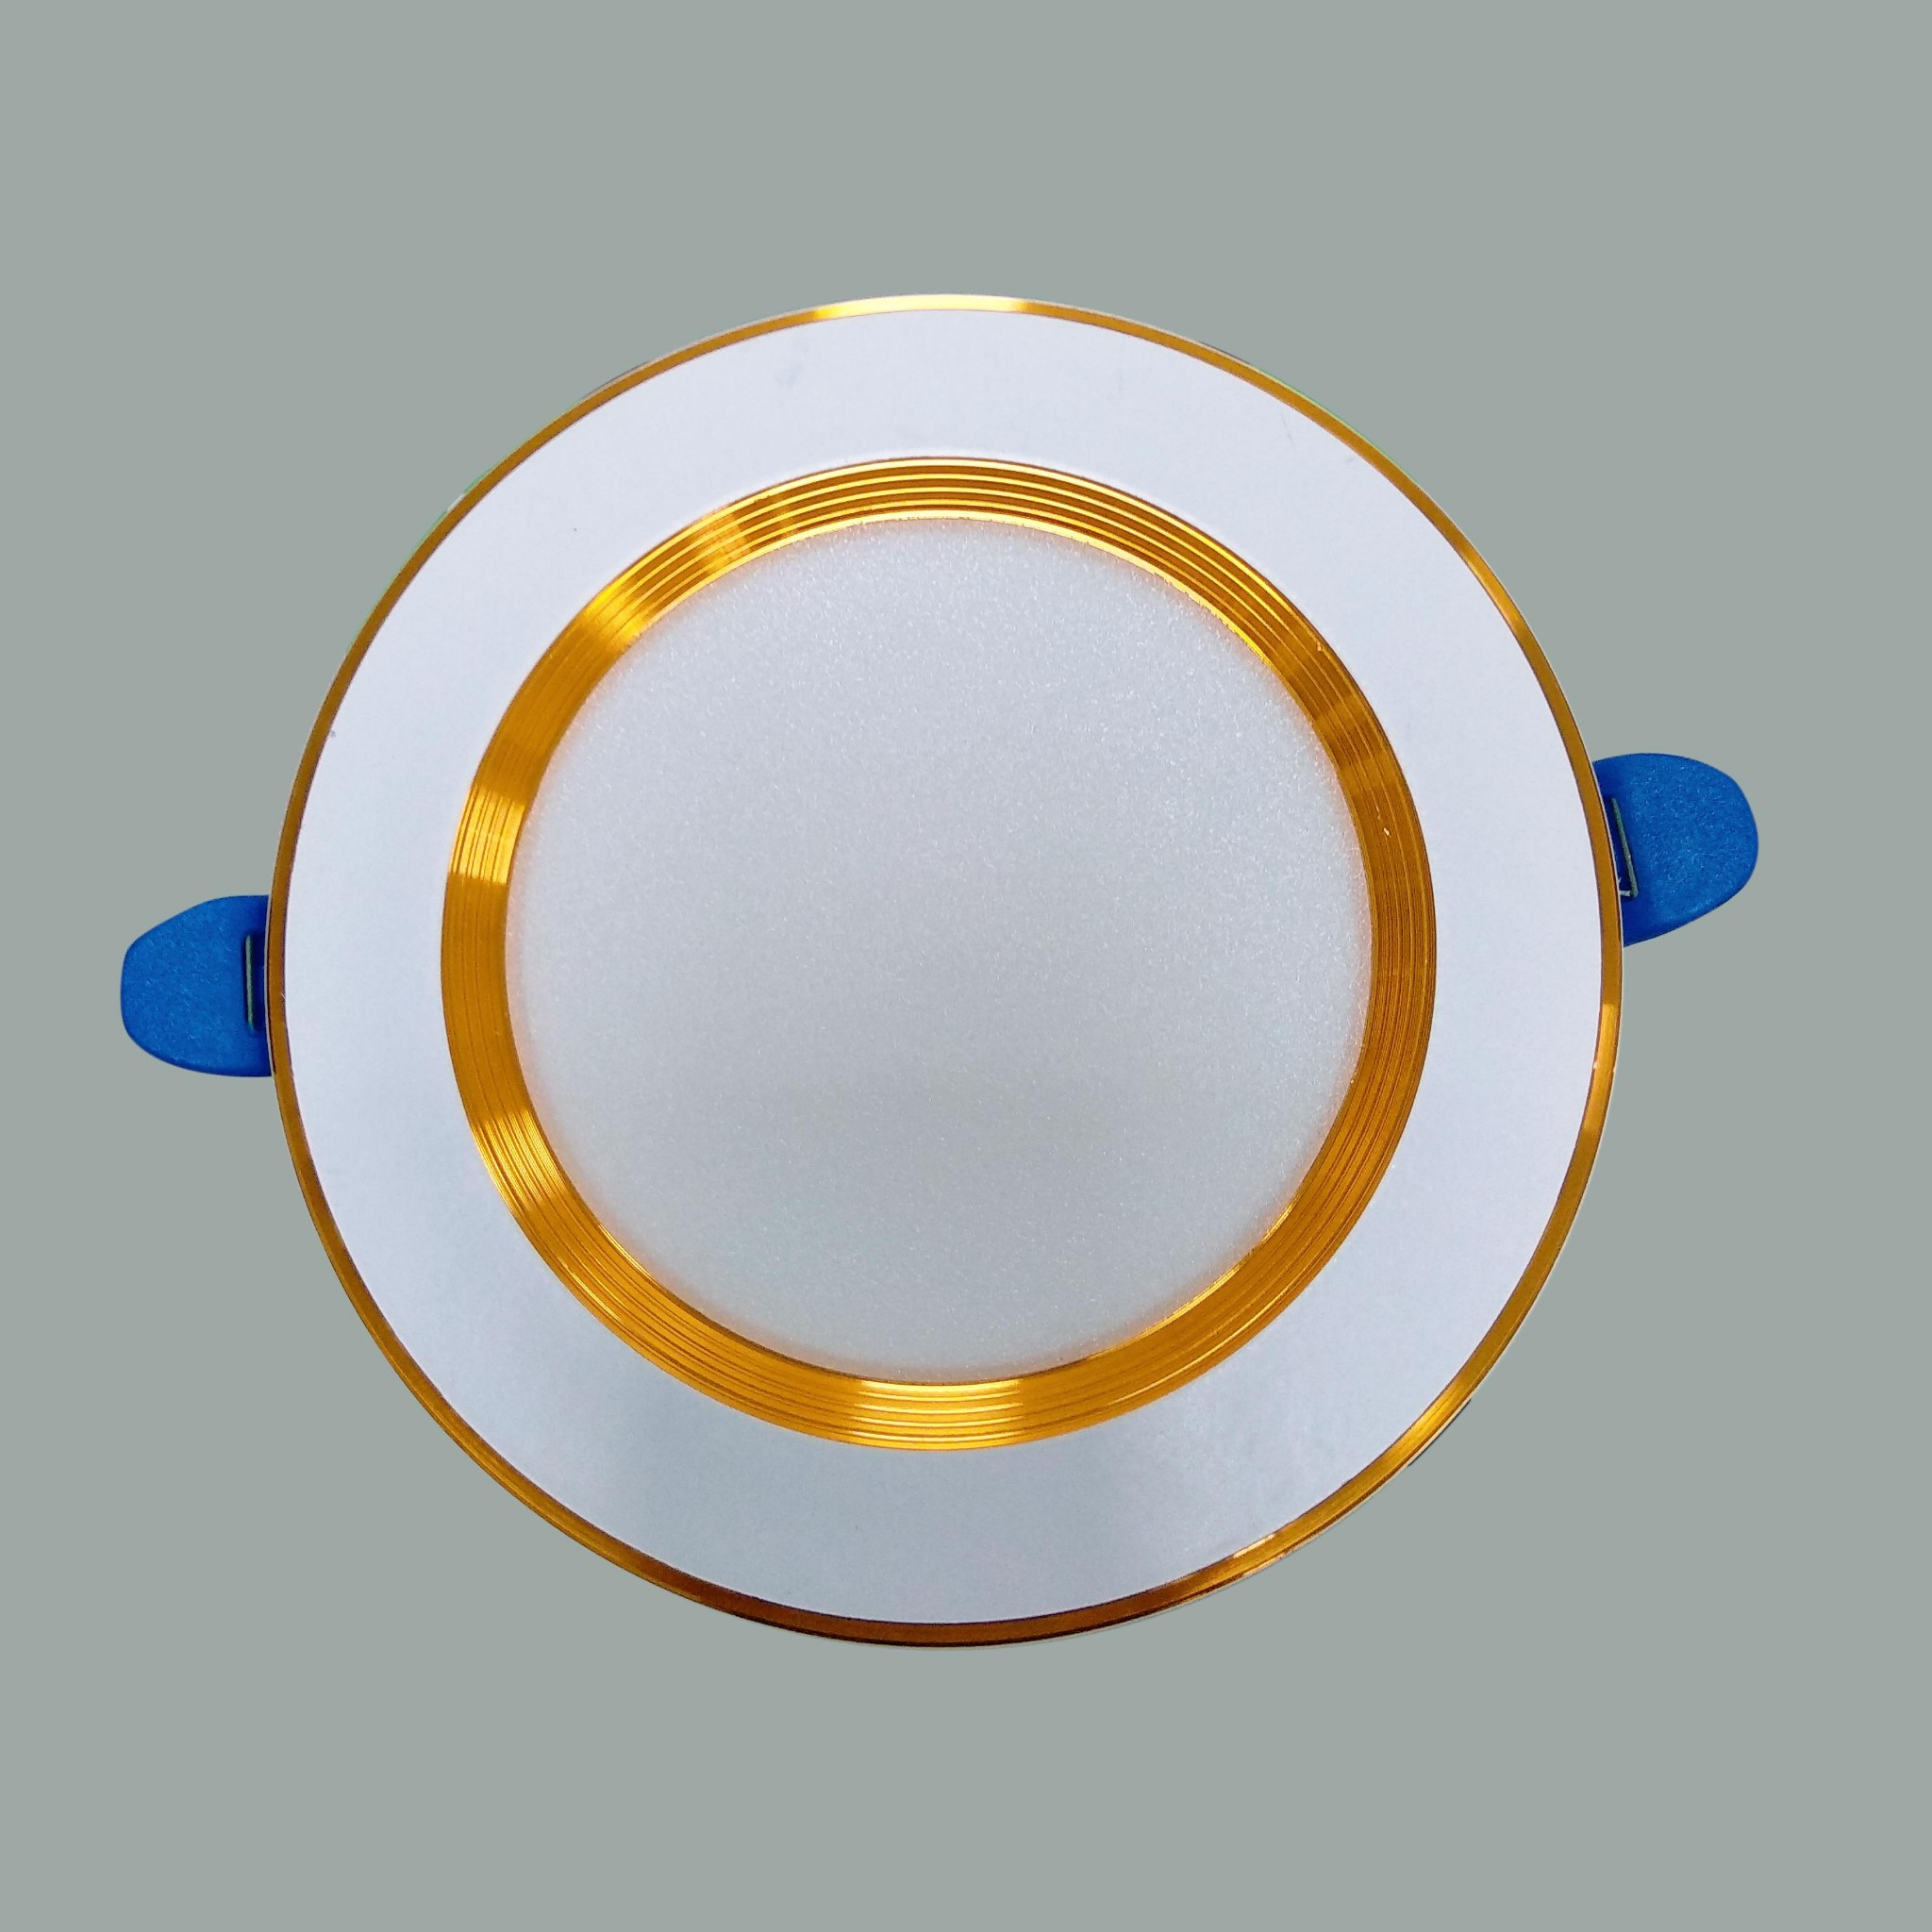 /products/den-led-downlight-vien-vang-doi-mau-d04v-9w